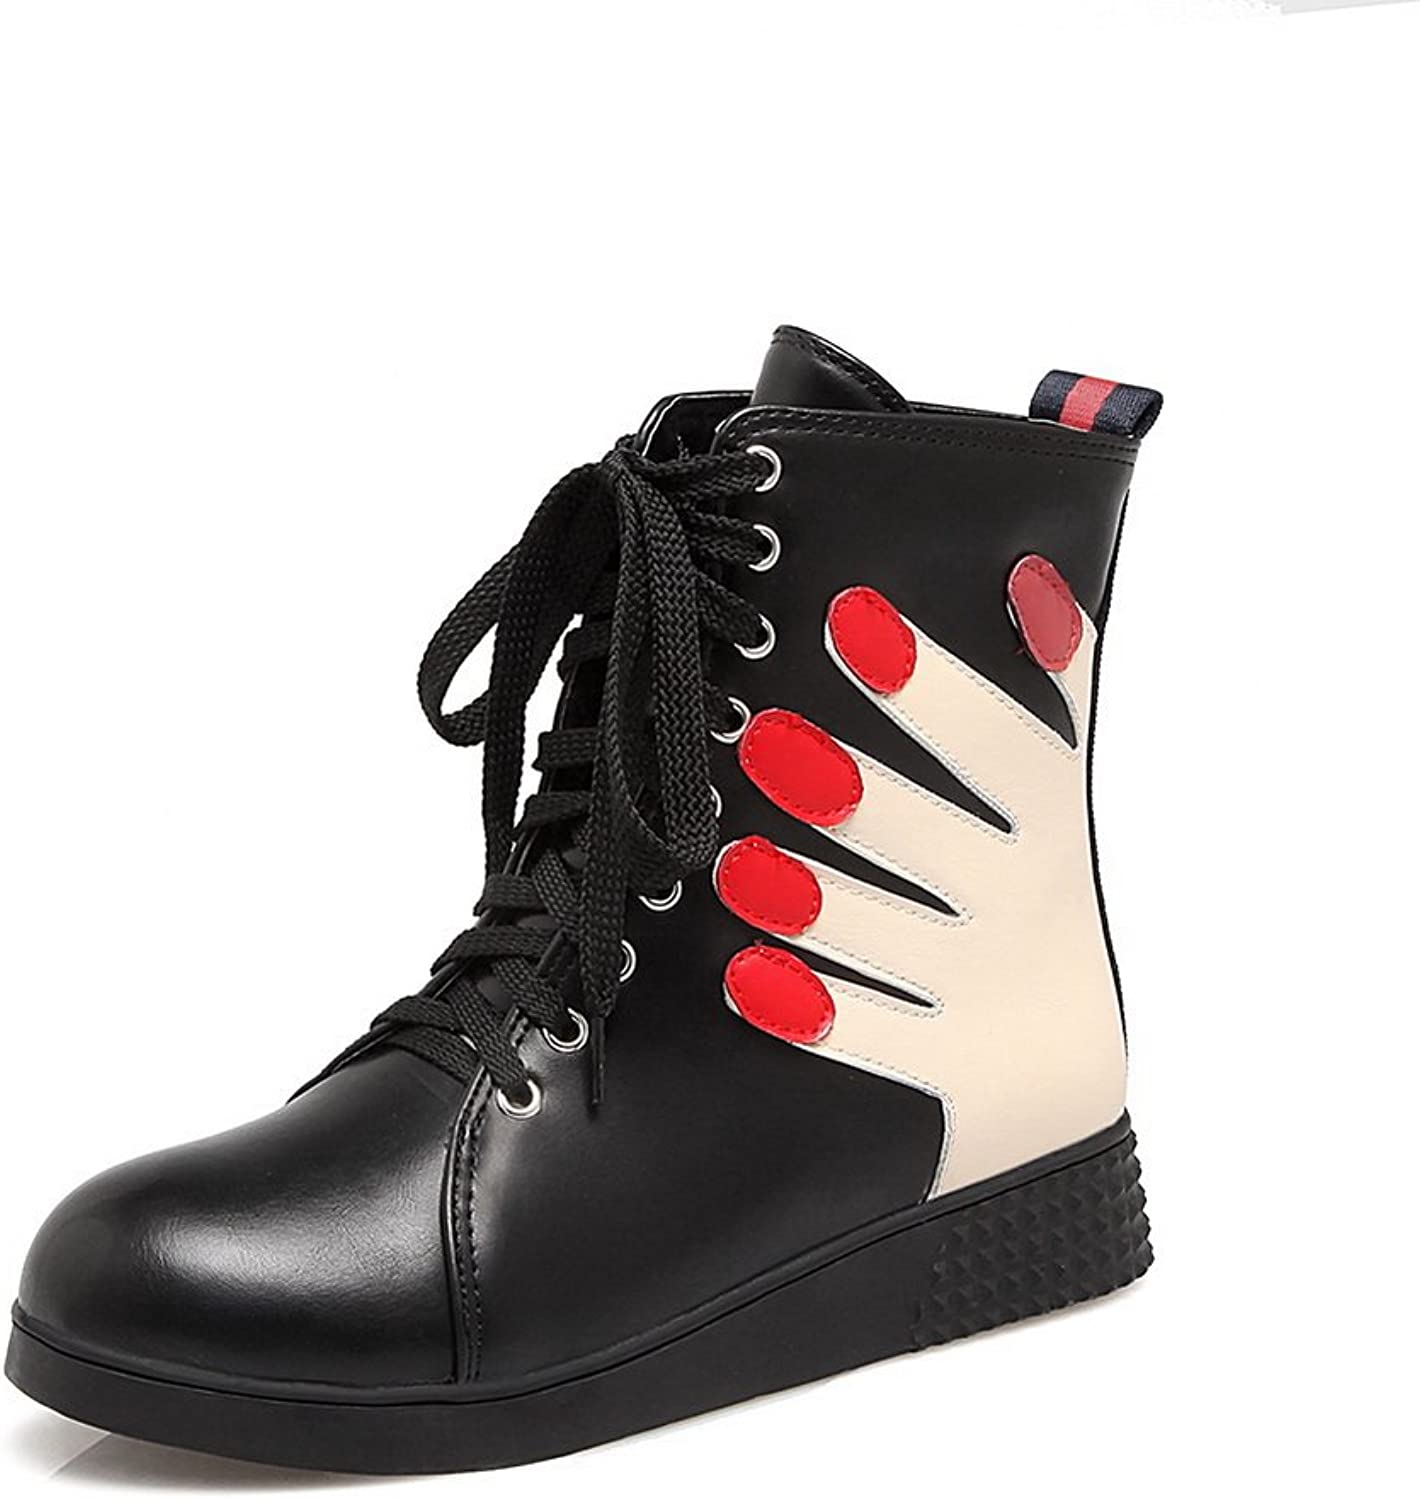 AdeeSu Womens High-Top Walking-shoes No-Heel Urethane Walking shoes SXC02514